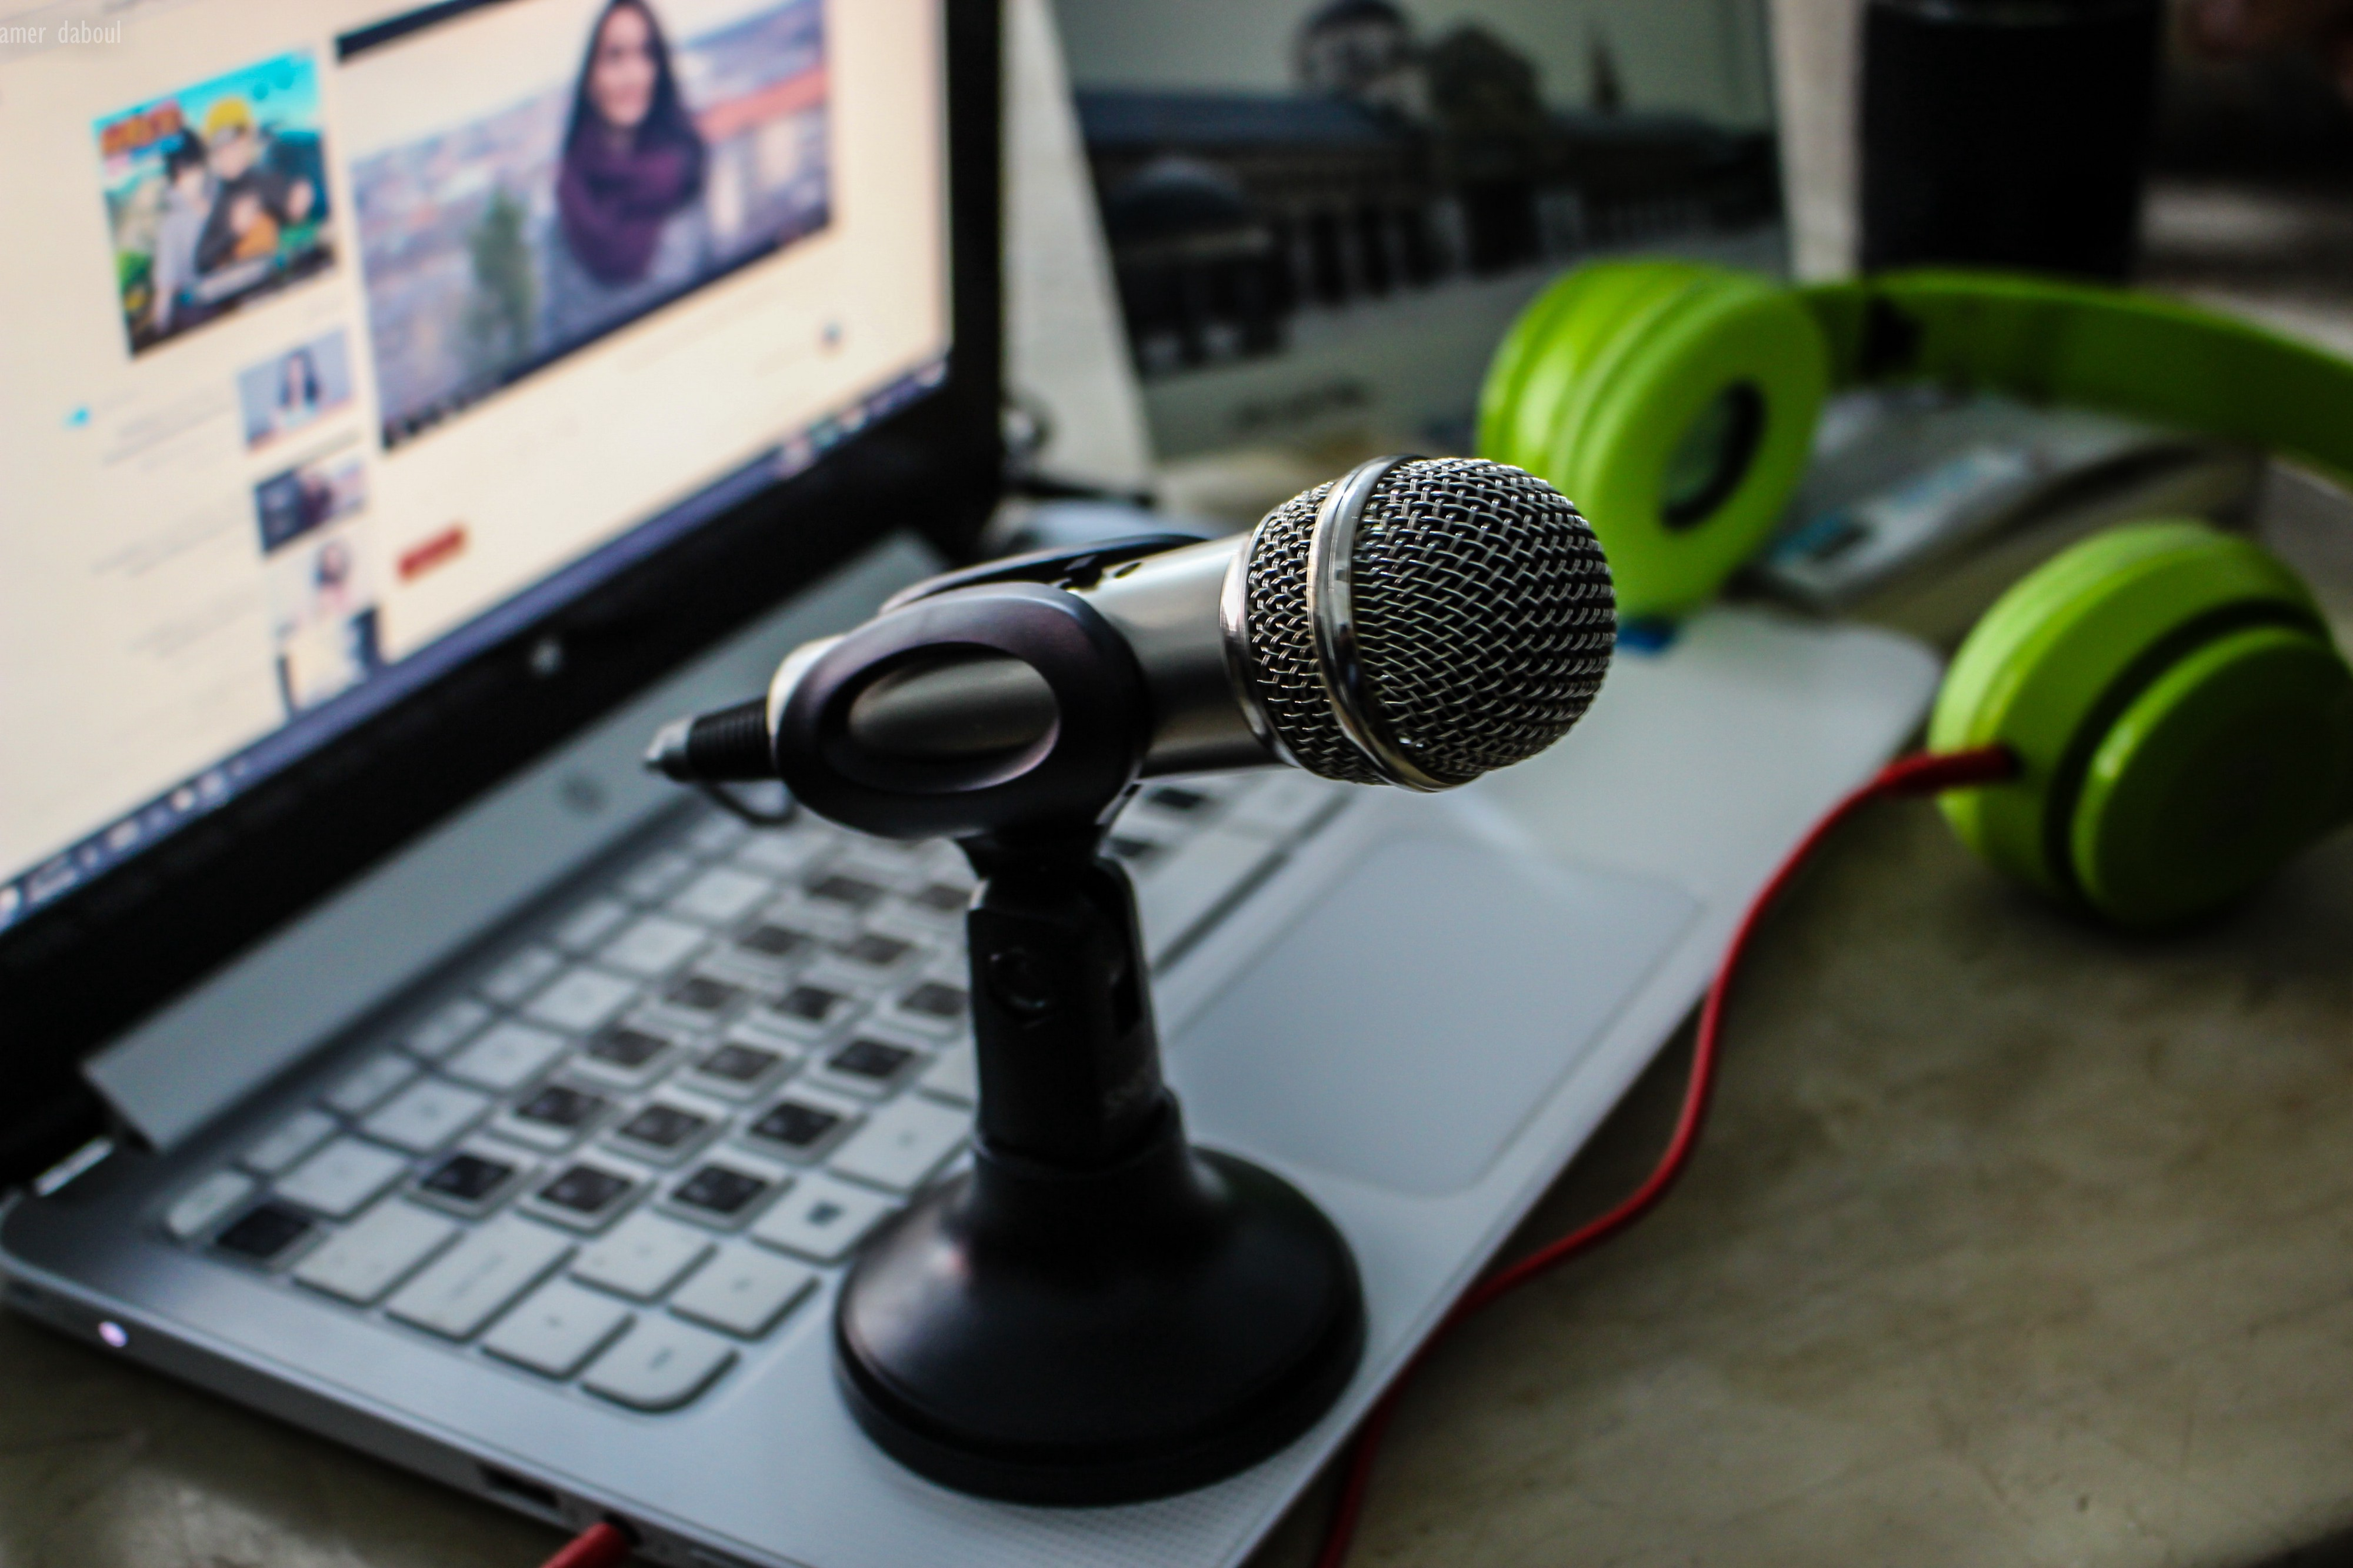 MacOS Tip: Record your screen with mic + system output whilst being